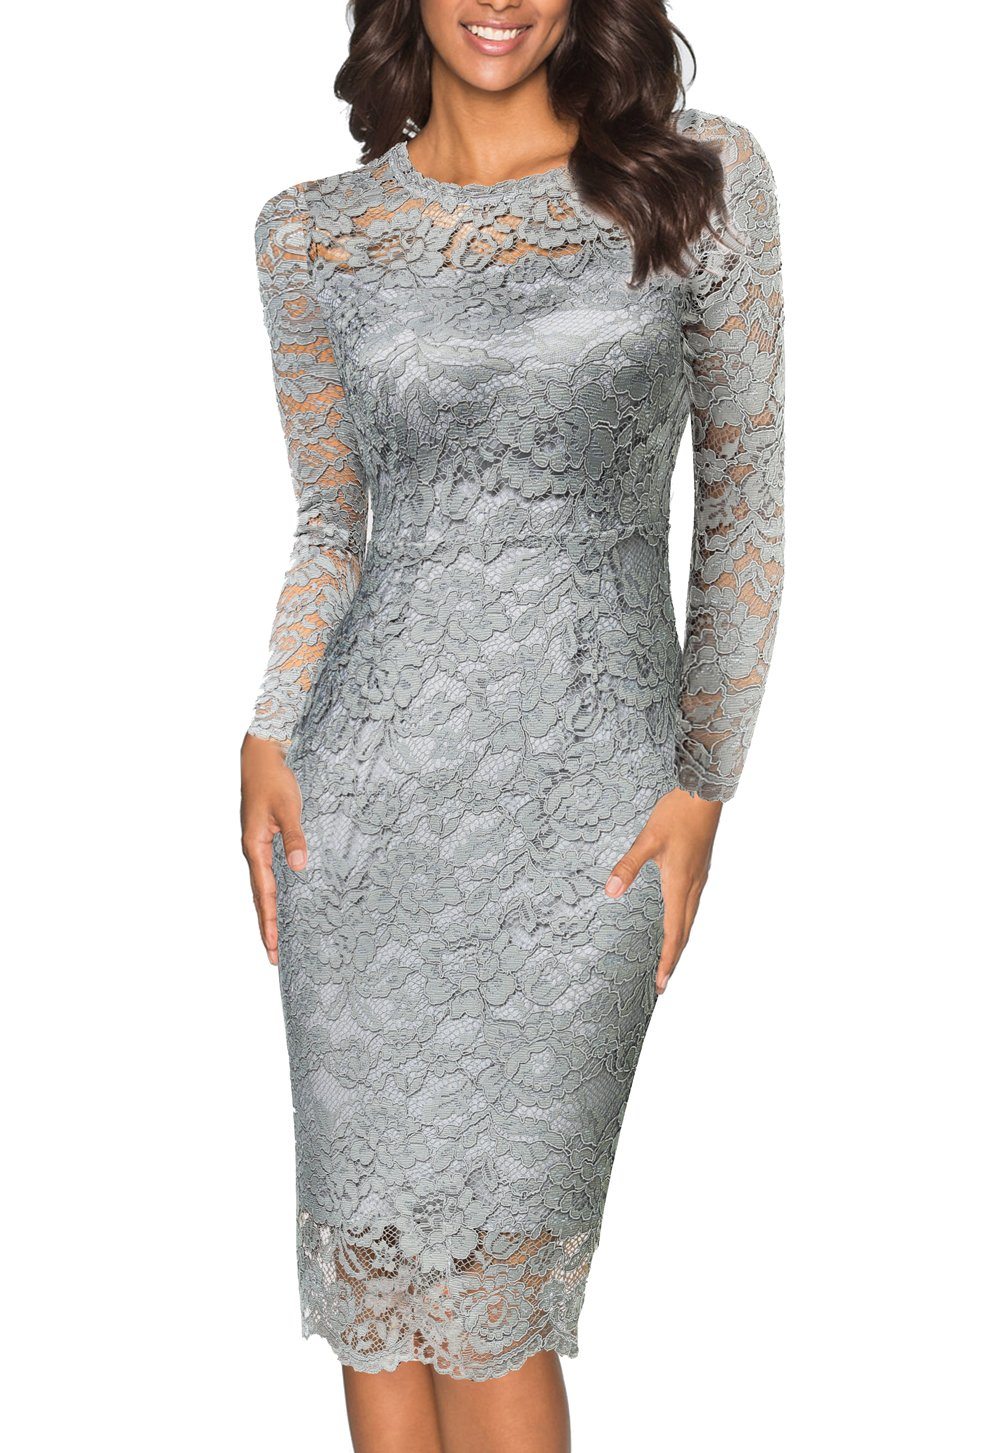 Joy EnvyLand Women Crewneck Sheath Lace Cocktail Prom Party Lined Midi Dress, Grey, X-Small